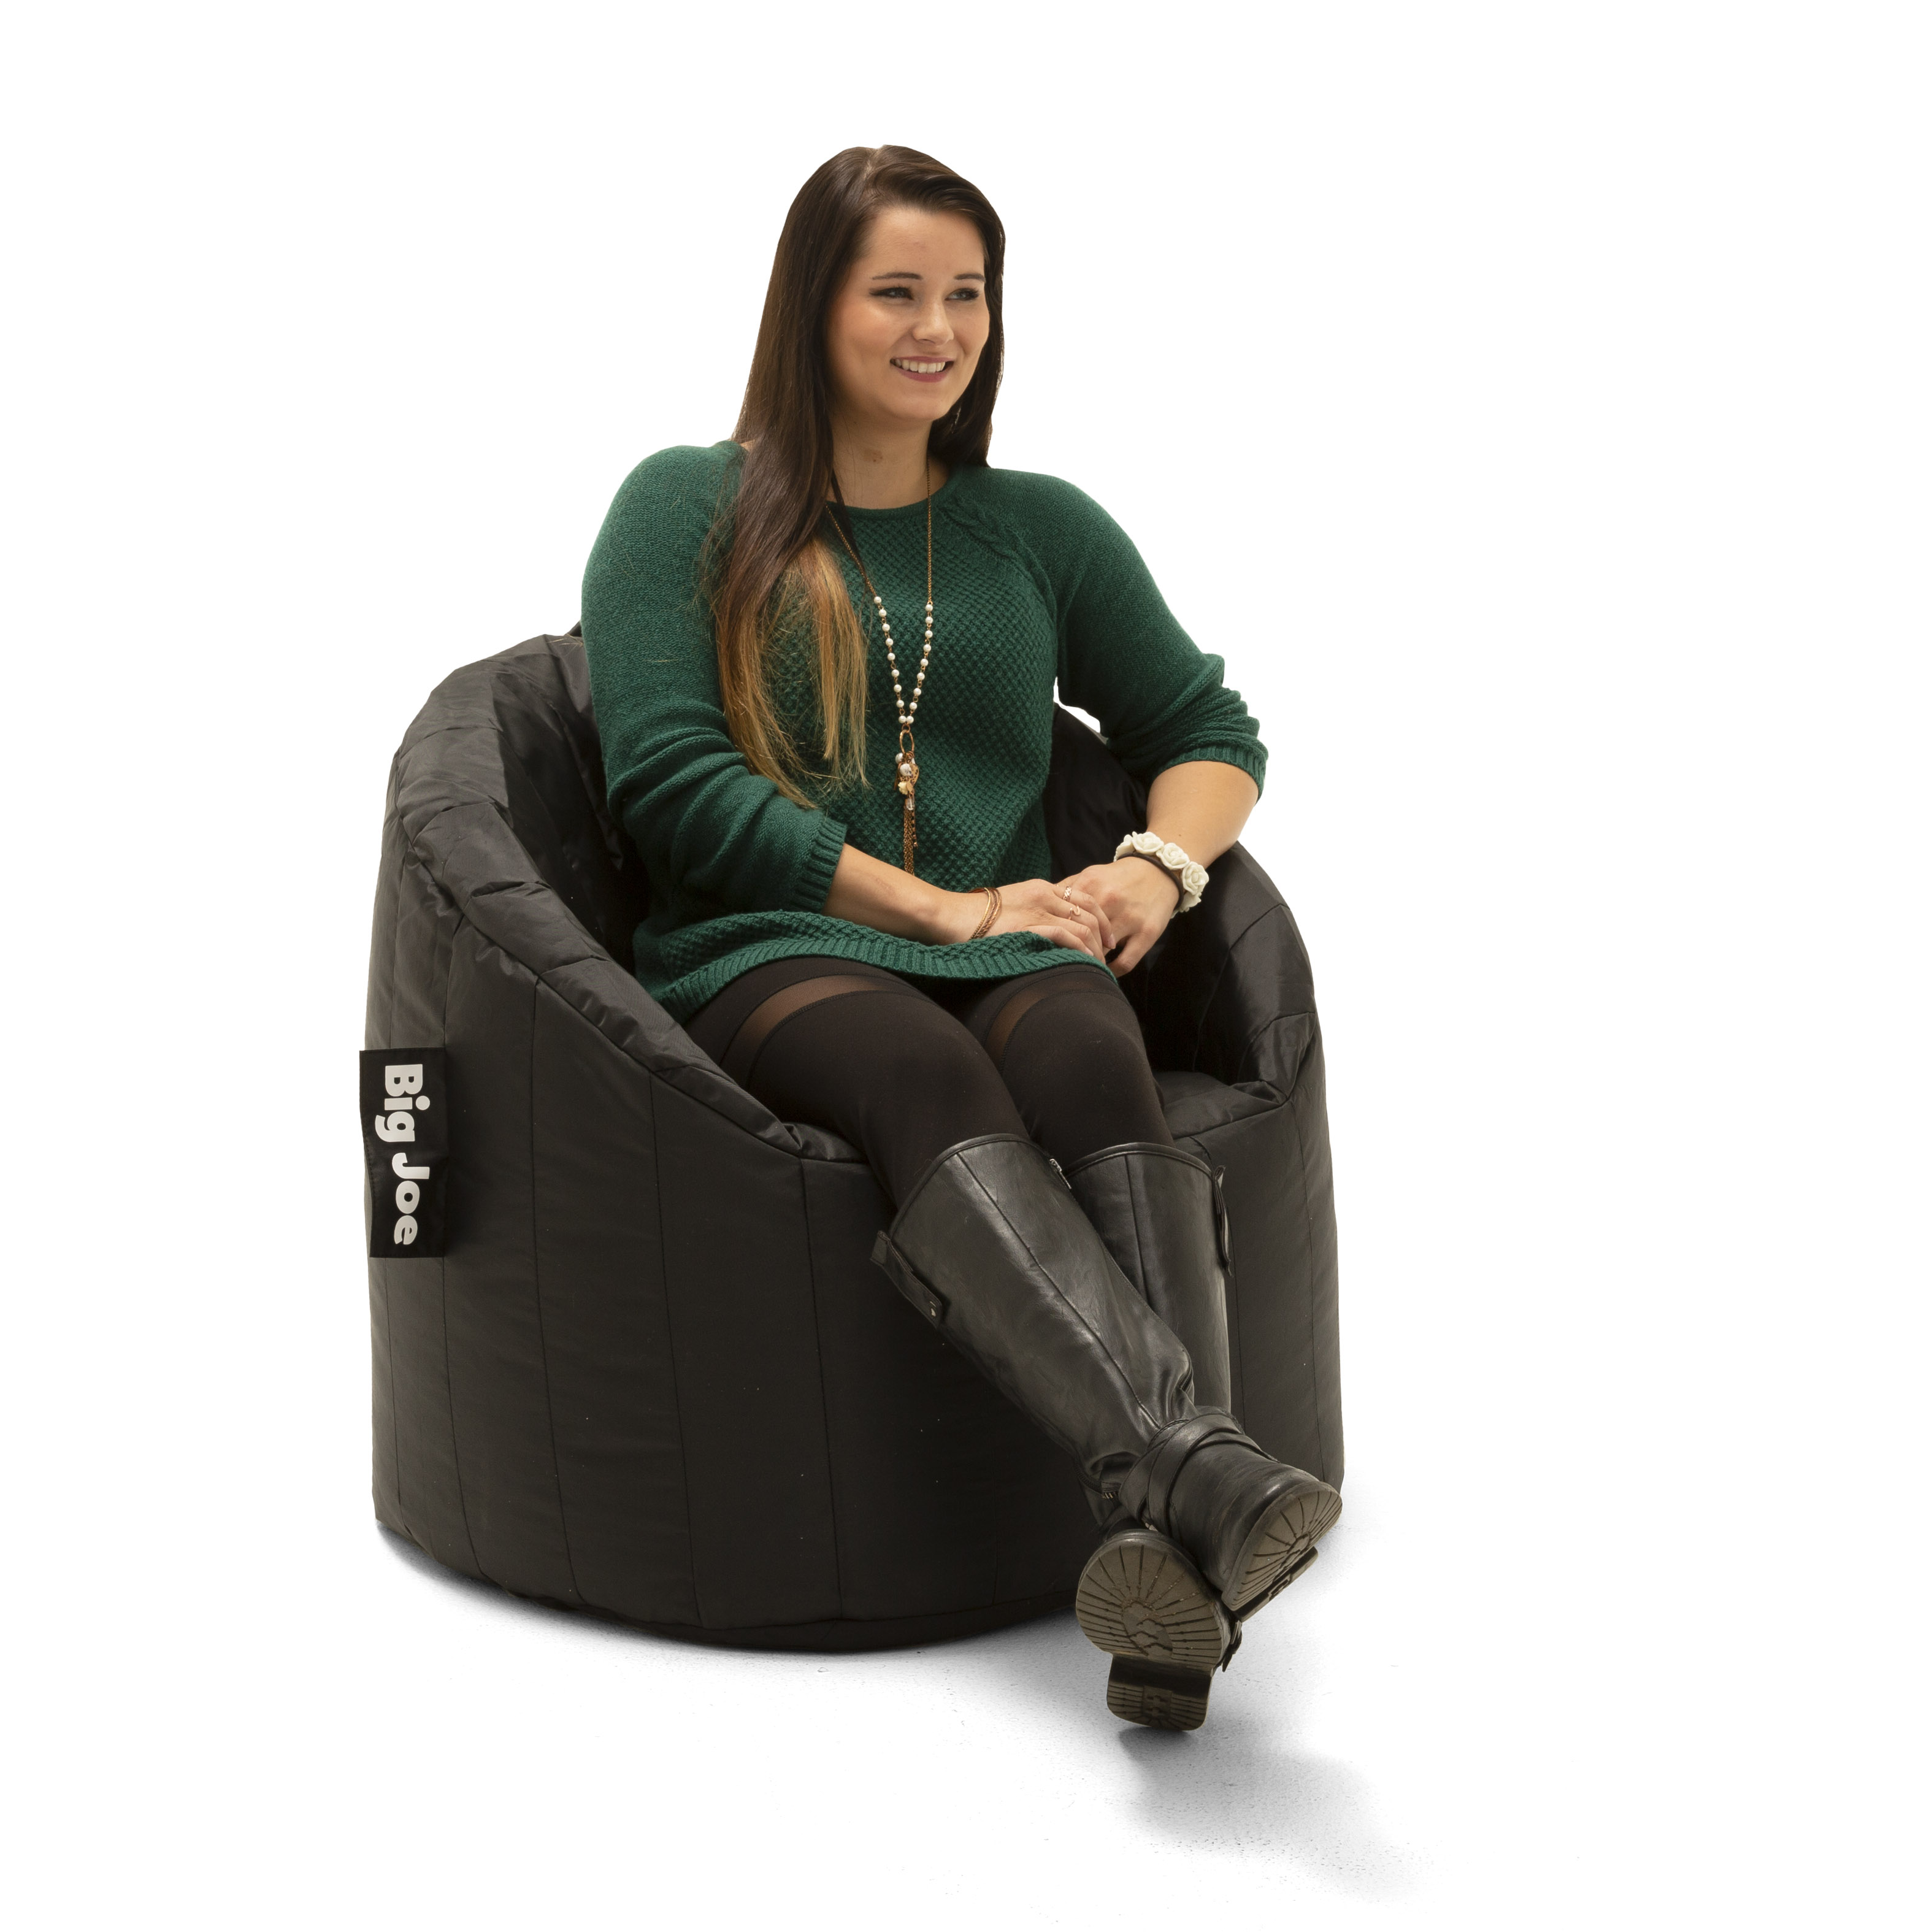 Fine Big Joe Lumin Bean Bag Chair Available In Multiple Colors Walmart Com Cjindustries Chair Design For Home Cjindustriesco